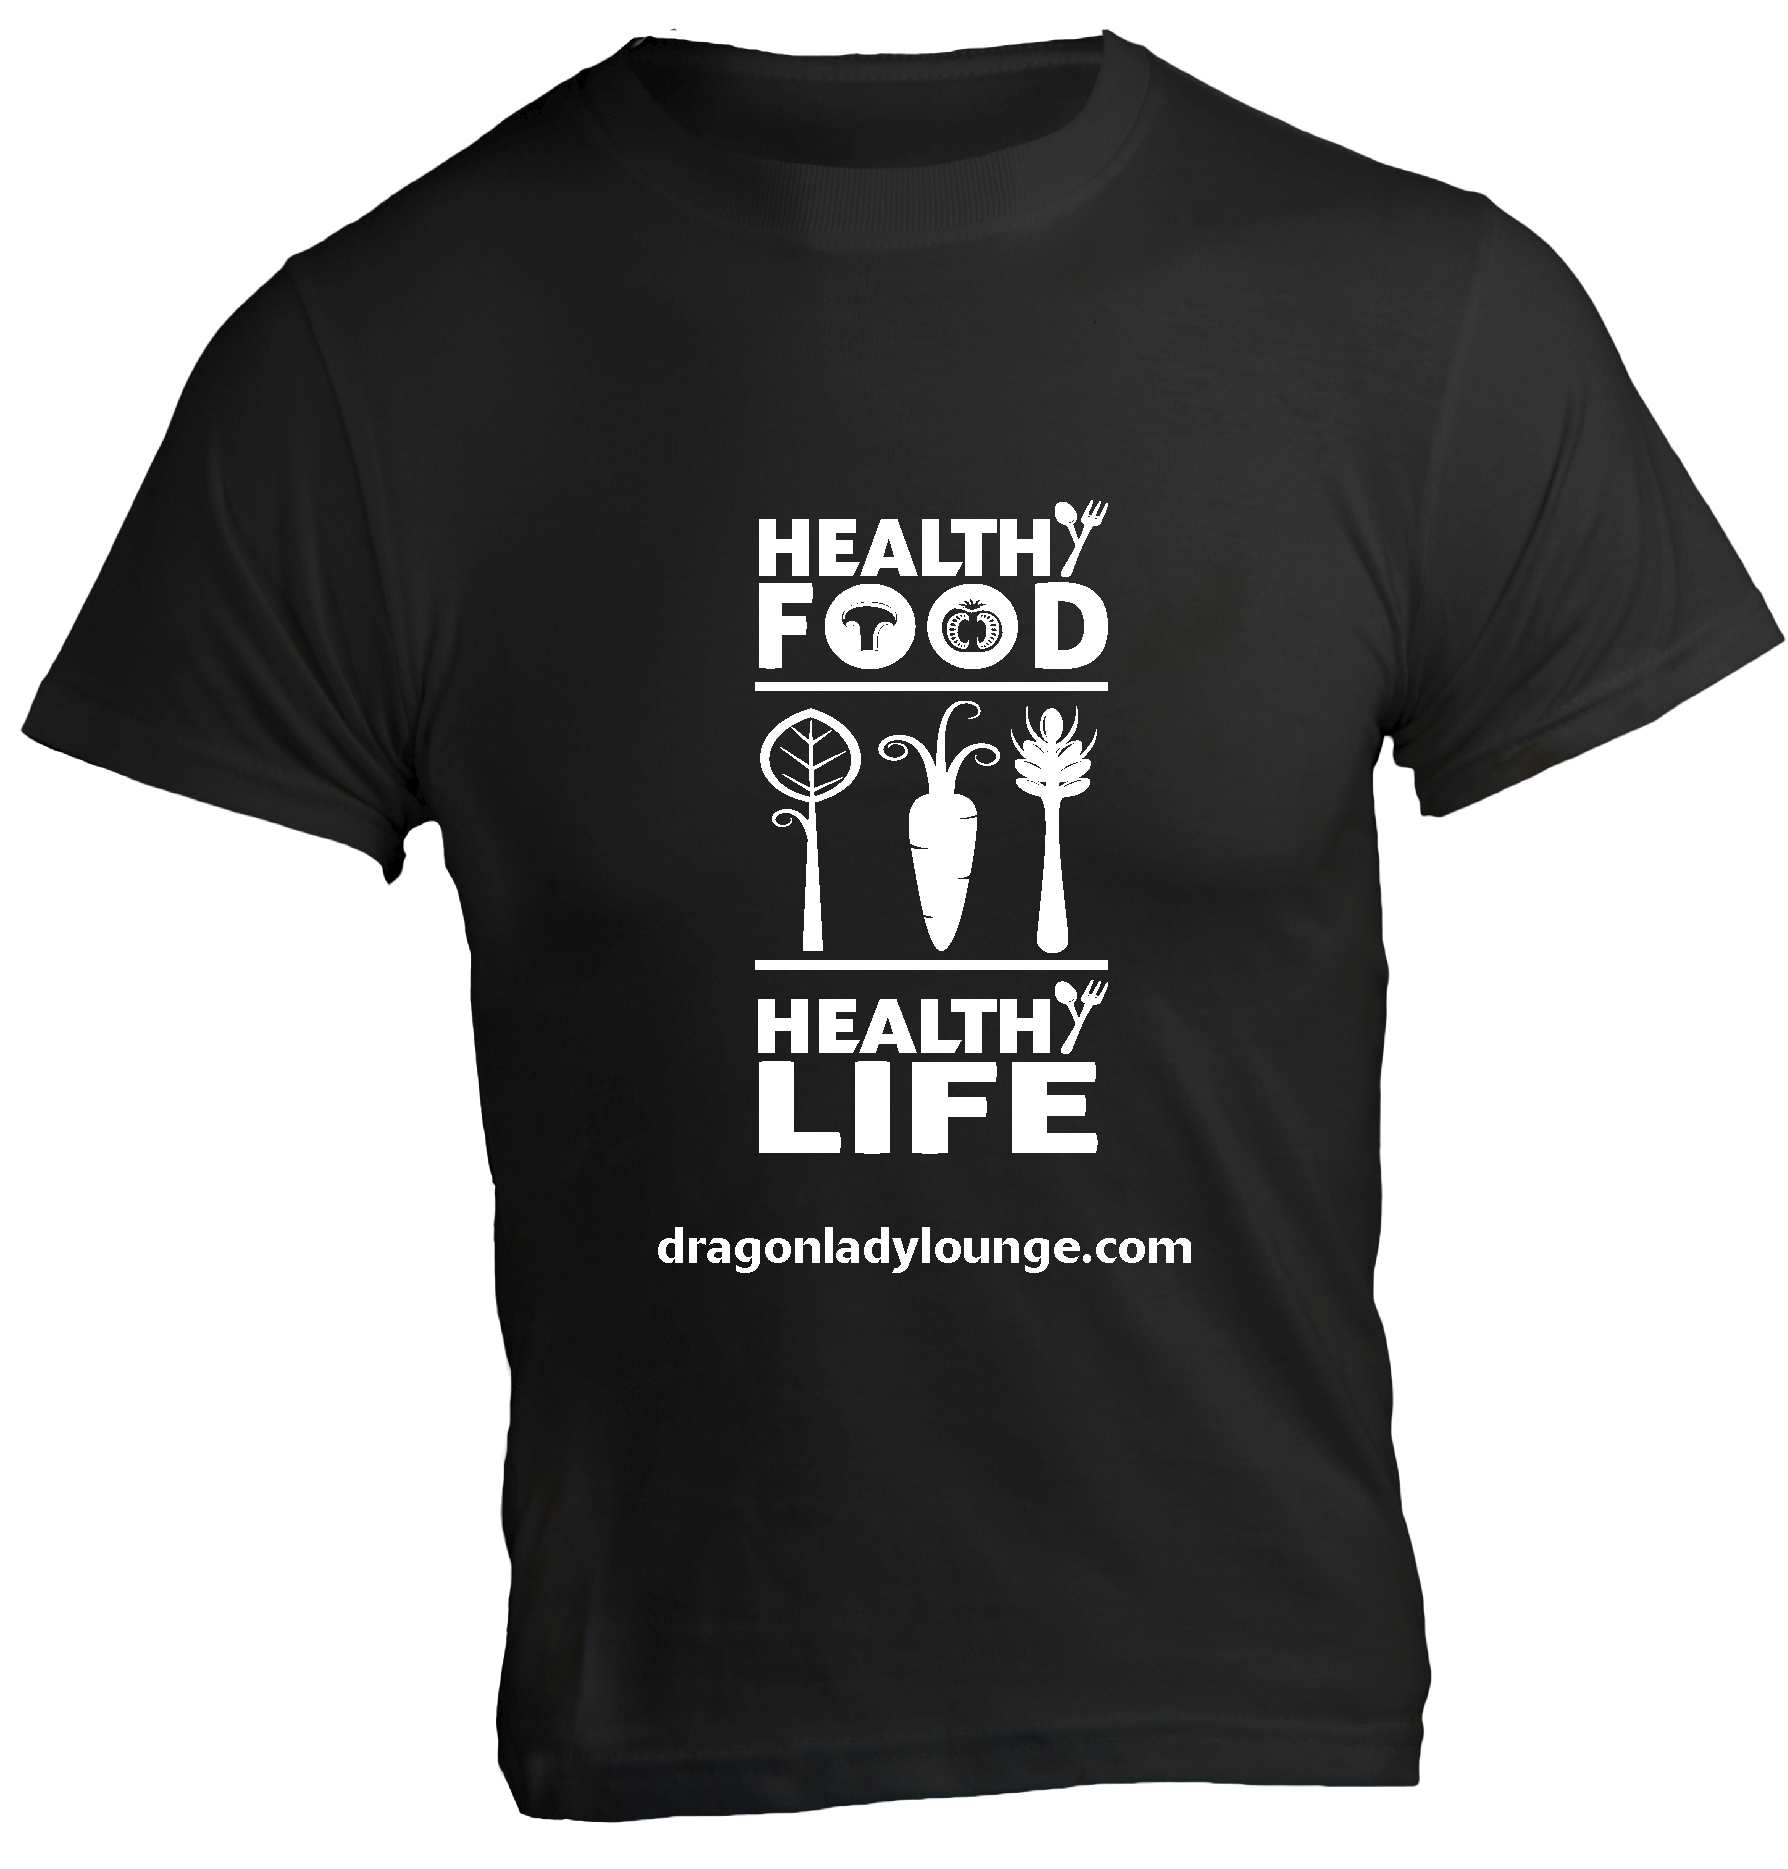 Healthy Food Life Shirt BW